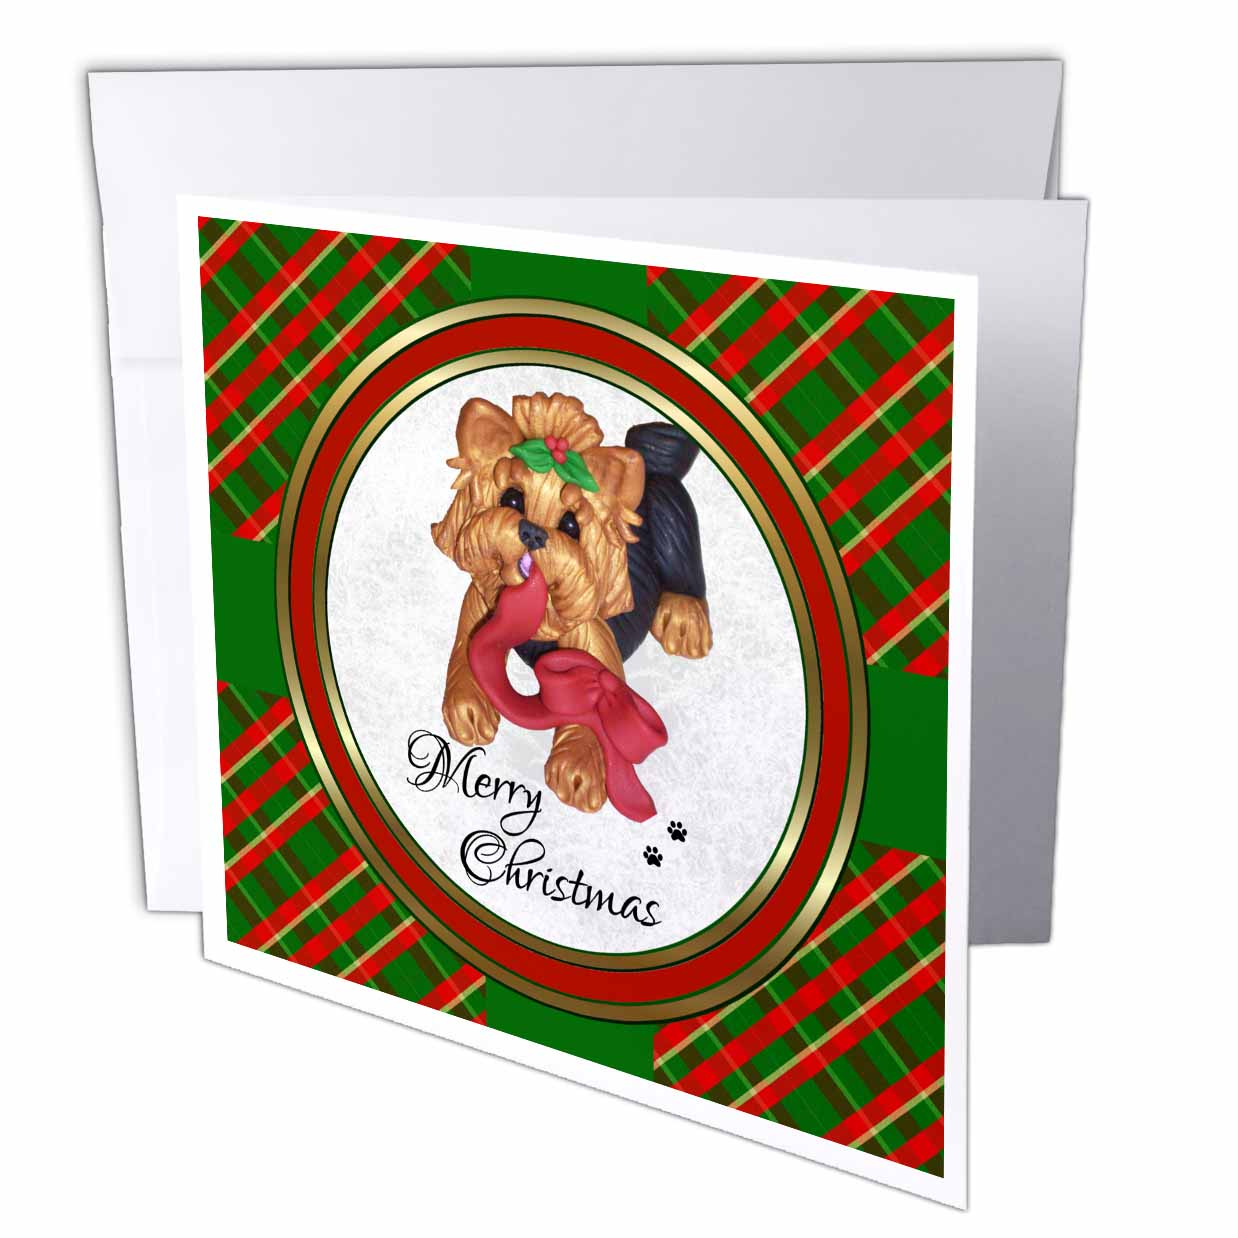 3dRose Cute Merry Christmas Red Ribbon Yorkie Yorkshire Terrier Dog Art , Greeting Cards, 6 x 6 inches, set of 12